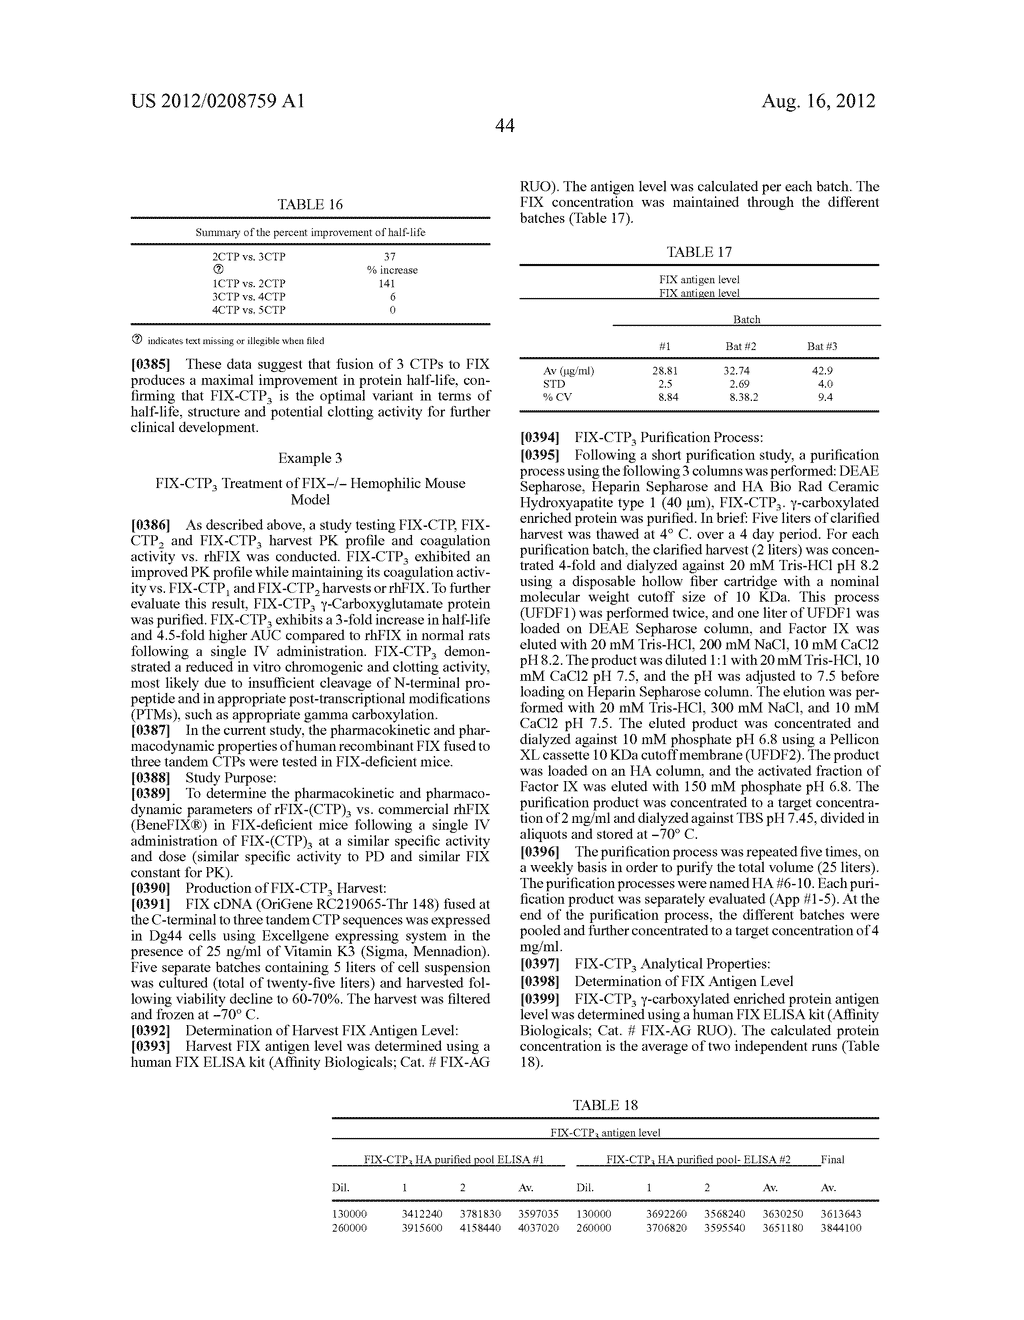 LONG-ACTING COAGULATION FACTORS AND METHODS OF PRODUCING SAME - diagram, schematic, and image 68